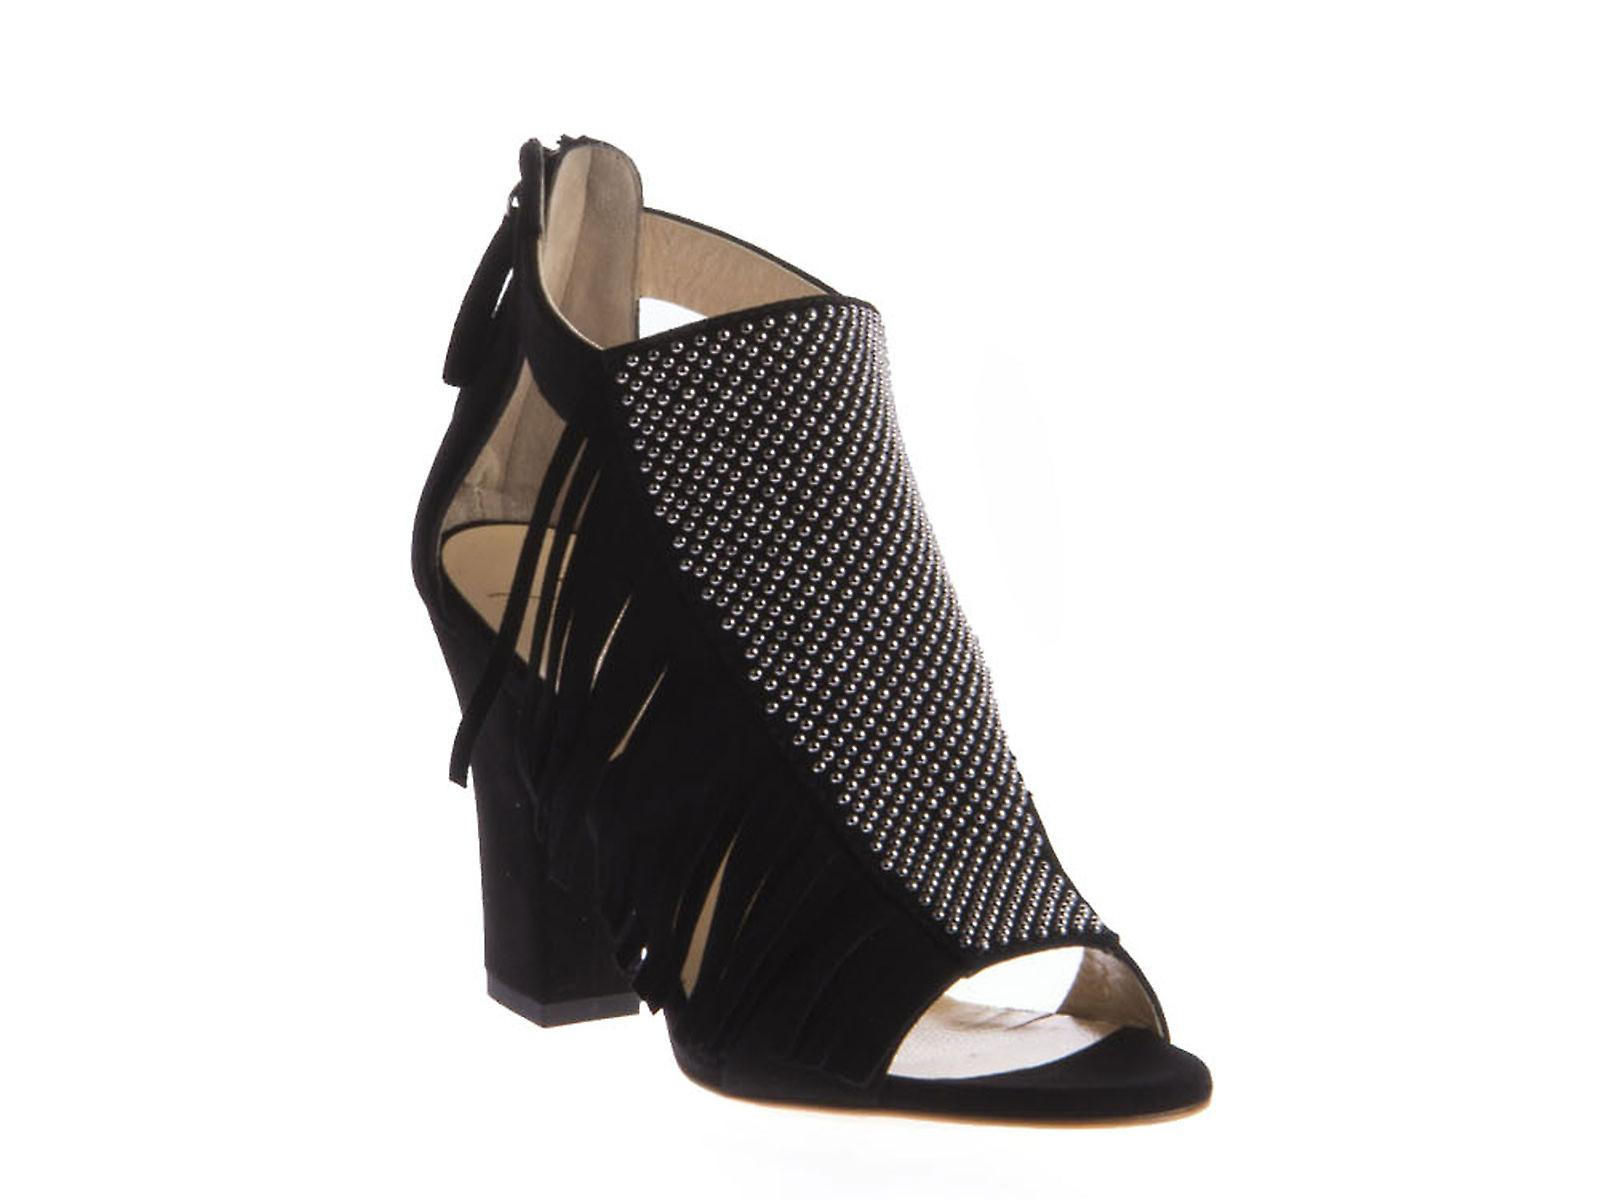 Giuseppe Zanotti heeled sandals in black suede leather NjTsS